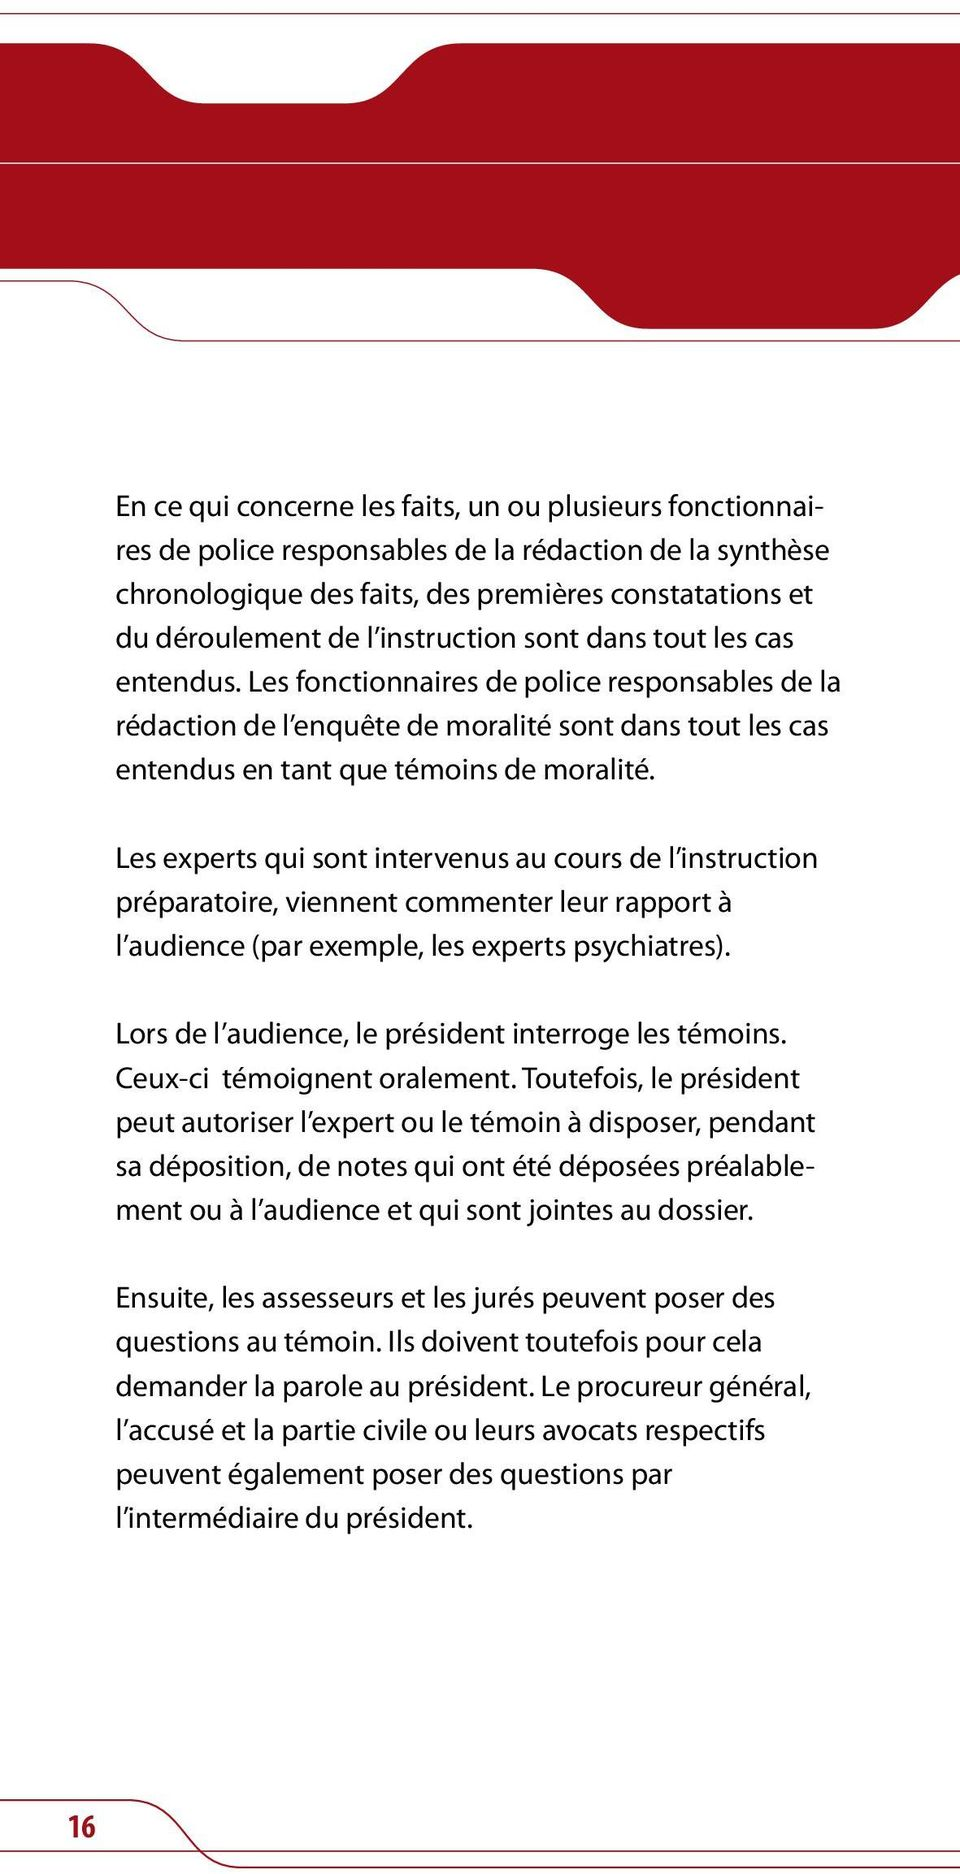 Les experts qui sont intervenus au cours de l instruction préparatoire, viennent commenter leur rapport à l audience (par exemple, les experts psychiatres).